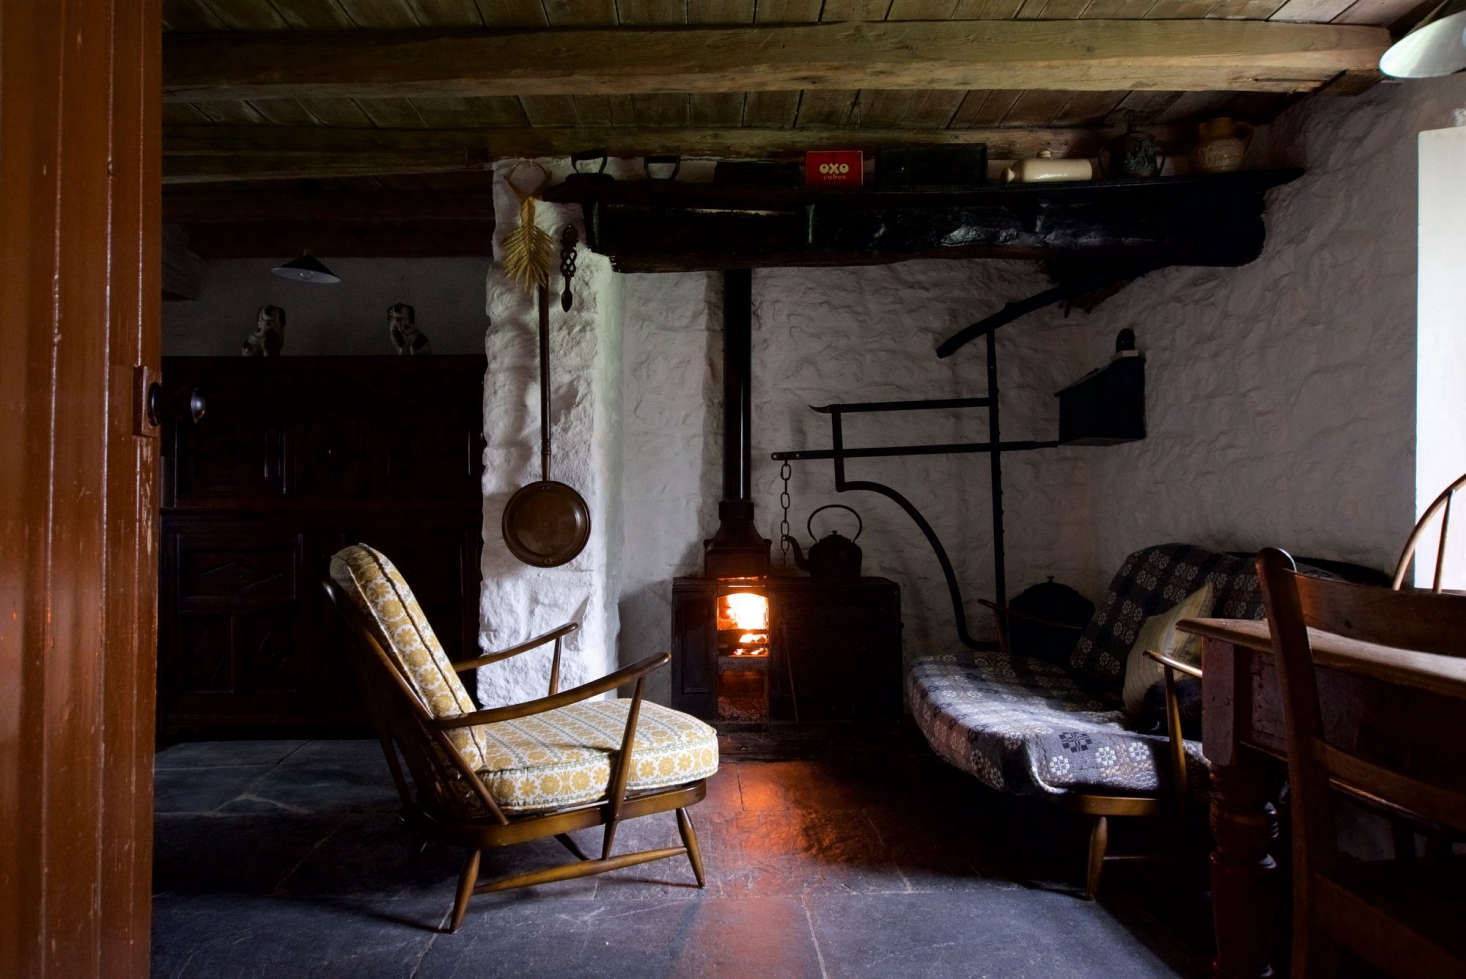 A wool blanket serves as makeshift slipcover in The Welsh House: Slow Living in a Traditional Cottage, Available for Rent, in Wales. Photograph by Will Venning for Remodelista.